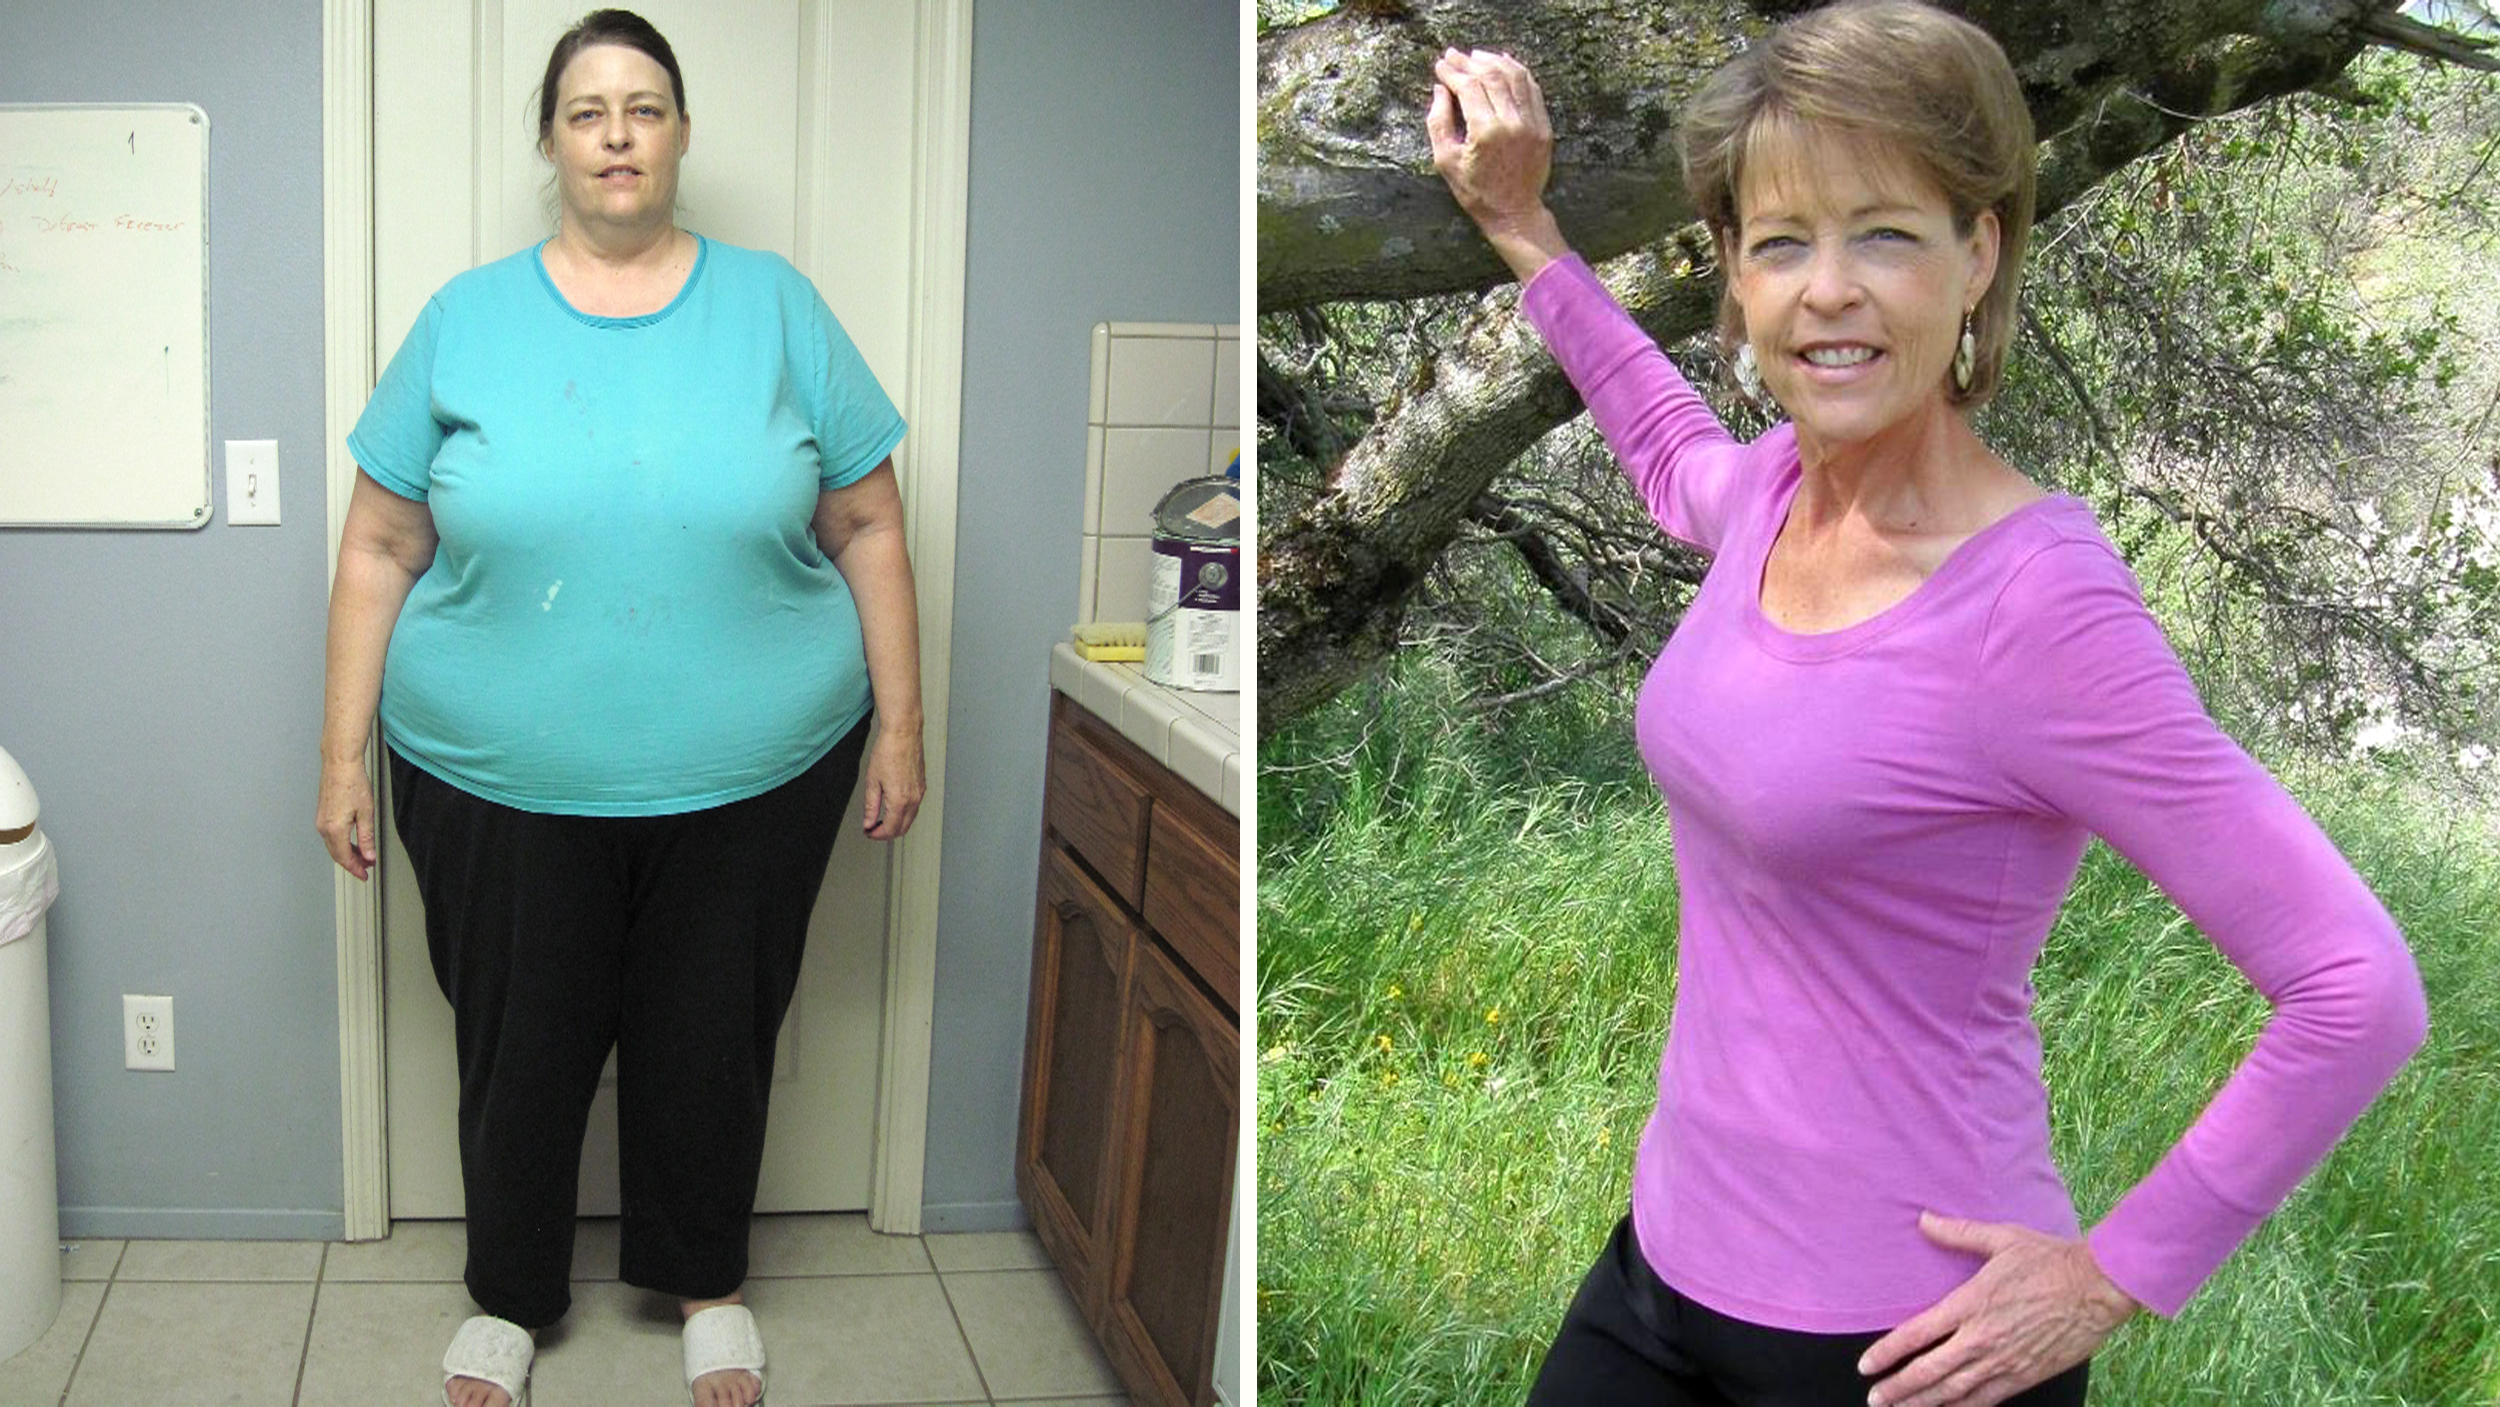 Midlife weight loss: How this woman lost 225 pounds in her 60s